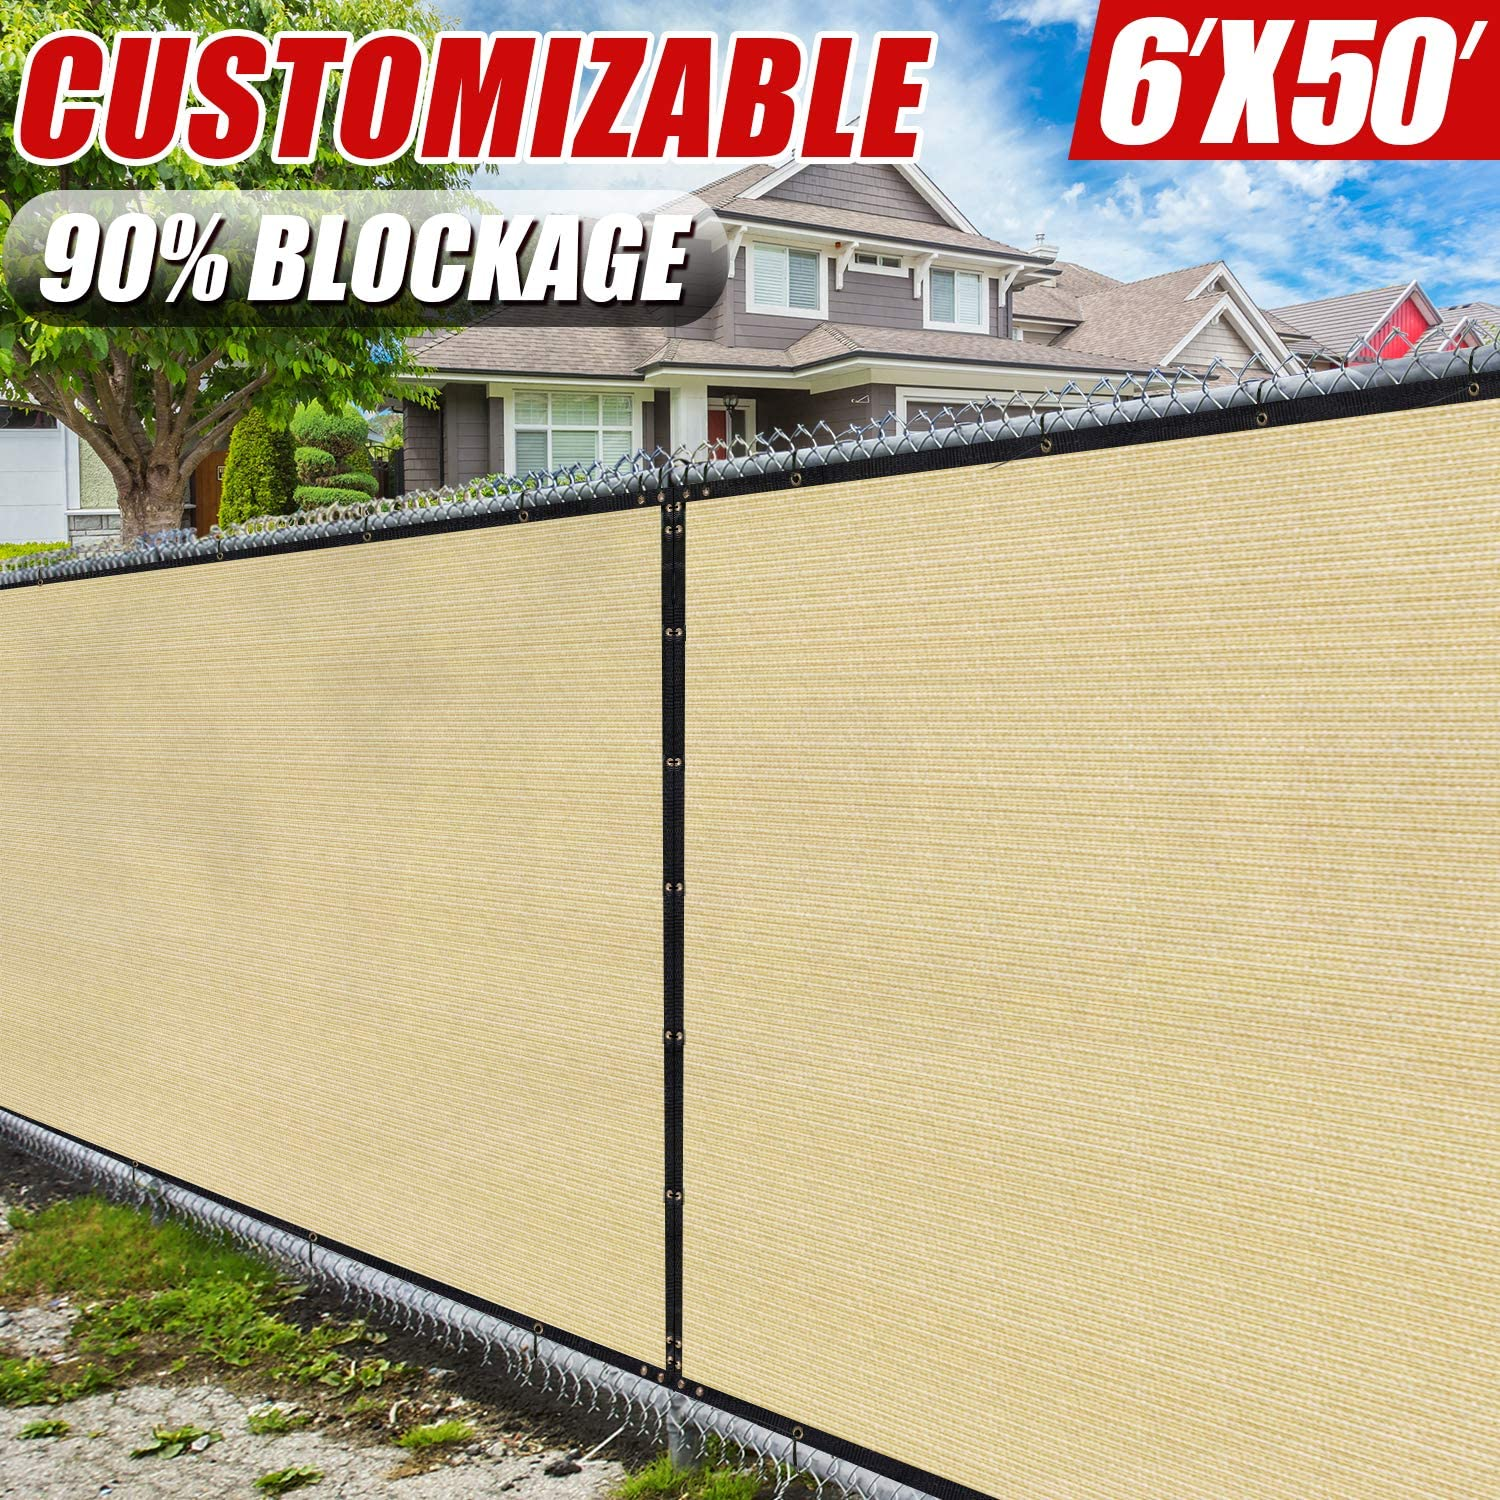 Amgo 6' x 50' Beige Fence Privacy Screen Windscreen,with Bindings & Grommets, Heavy Duty for Commercial and Residential, 90% Blockage, Cable Zip Ties Included, (Available for Custom Sizes)